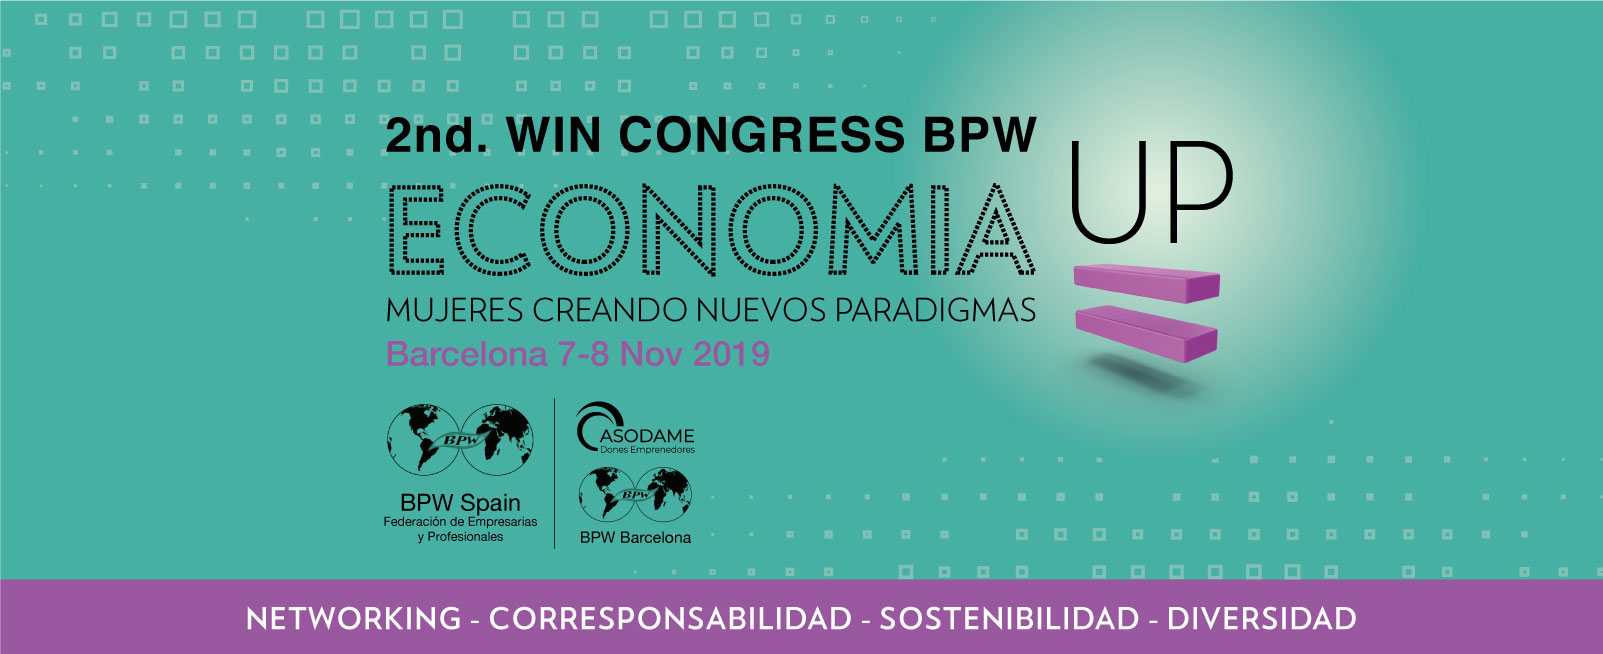 ECONOMIA UP! Second Win Congress BPW - Asadome